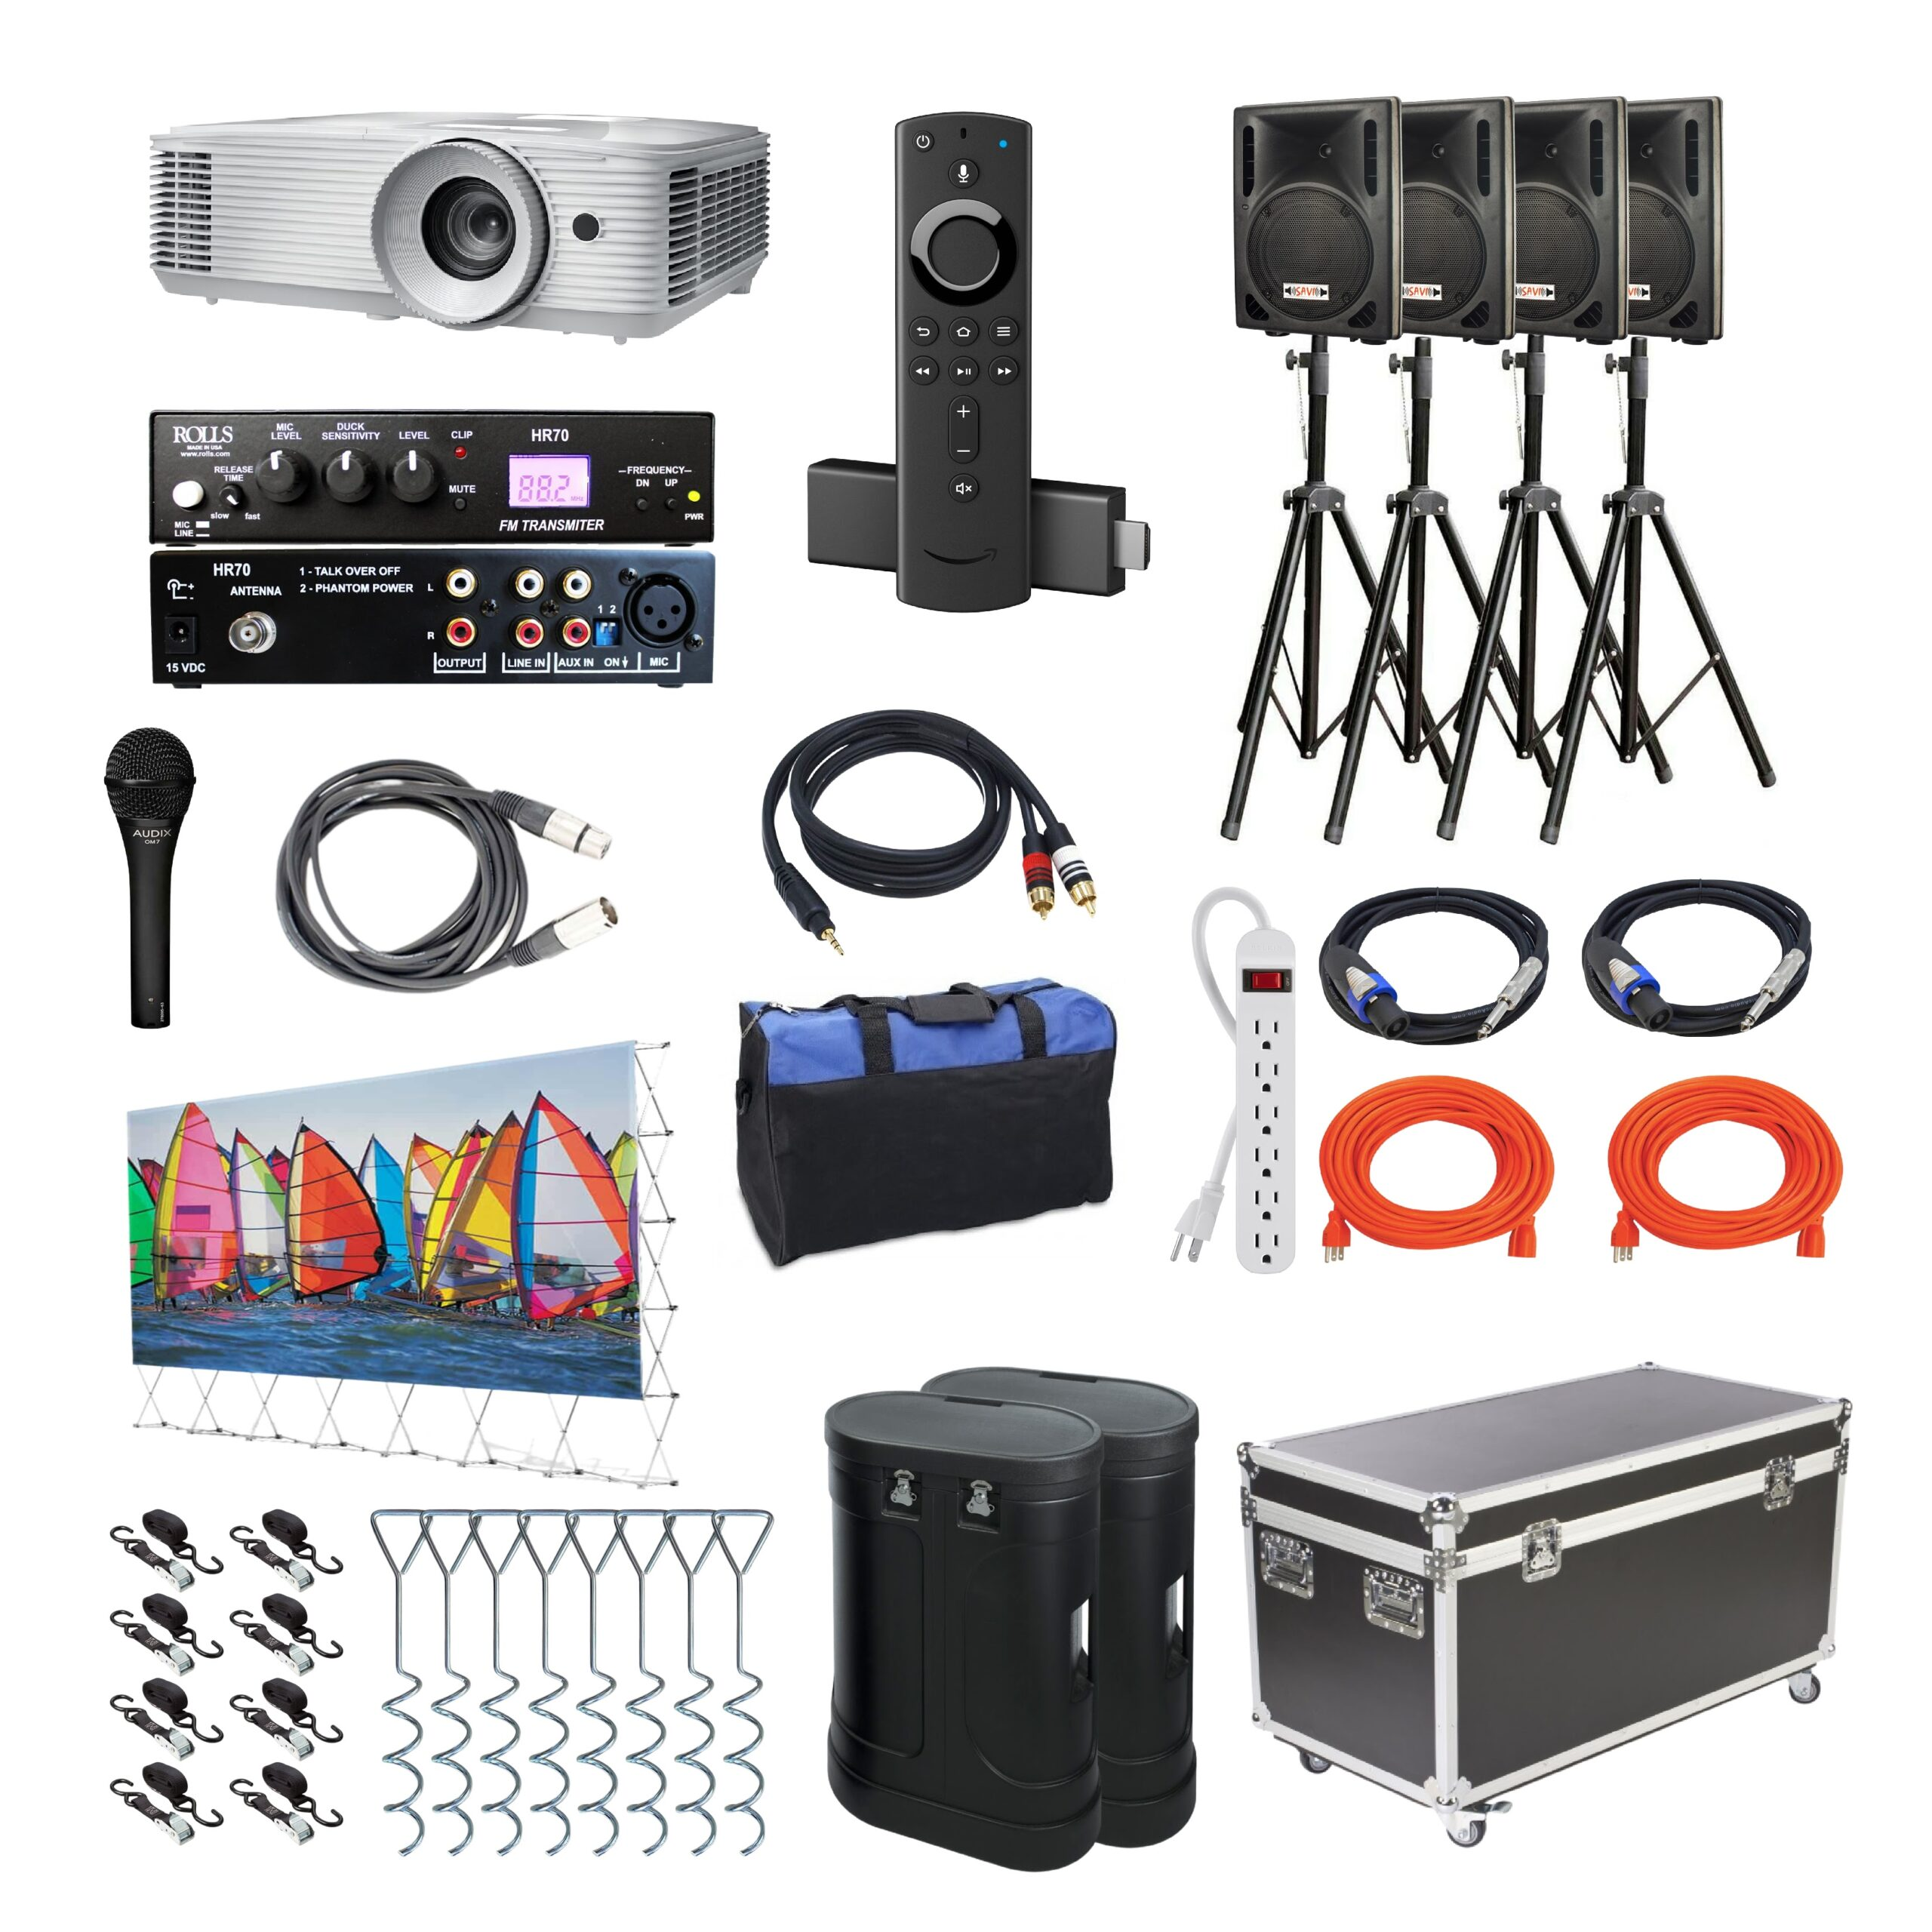 Drive-In Series System Components